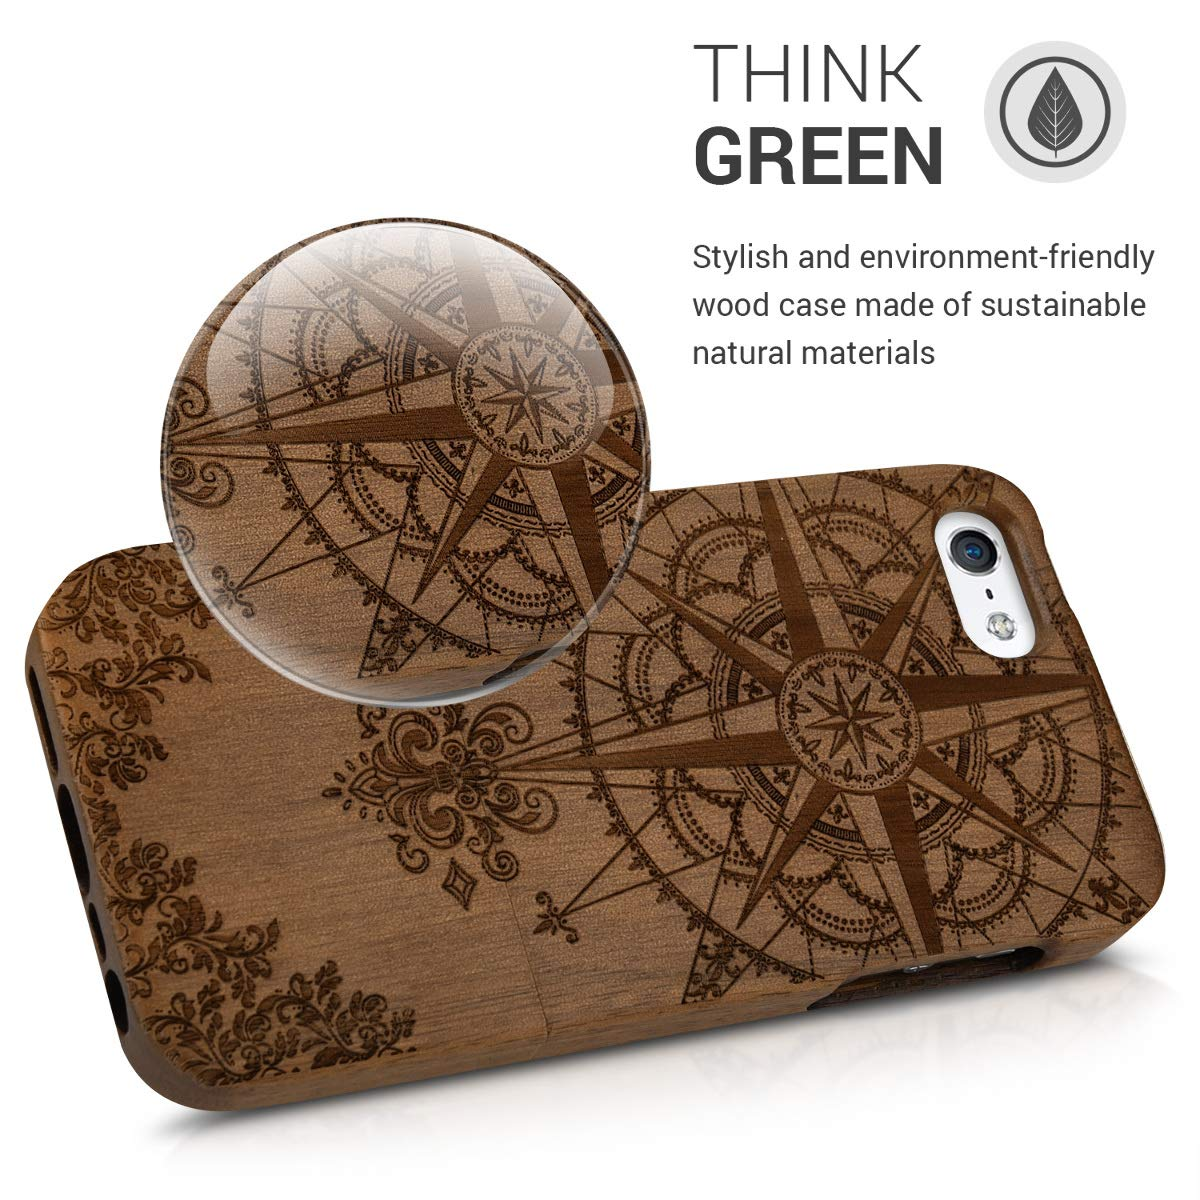 Natural Solid Hard Wooden Protective Cover for Apple iPhone SE 5 5S Bamboo Wood Case 5 5S kwmobile Apple iPhone SE